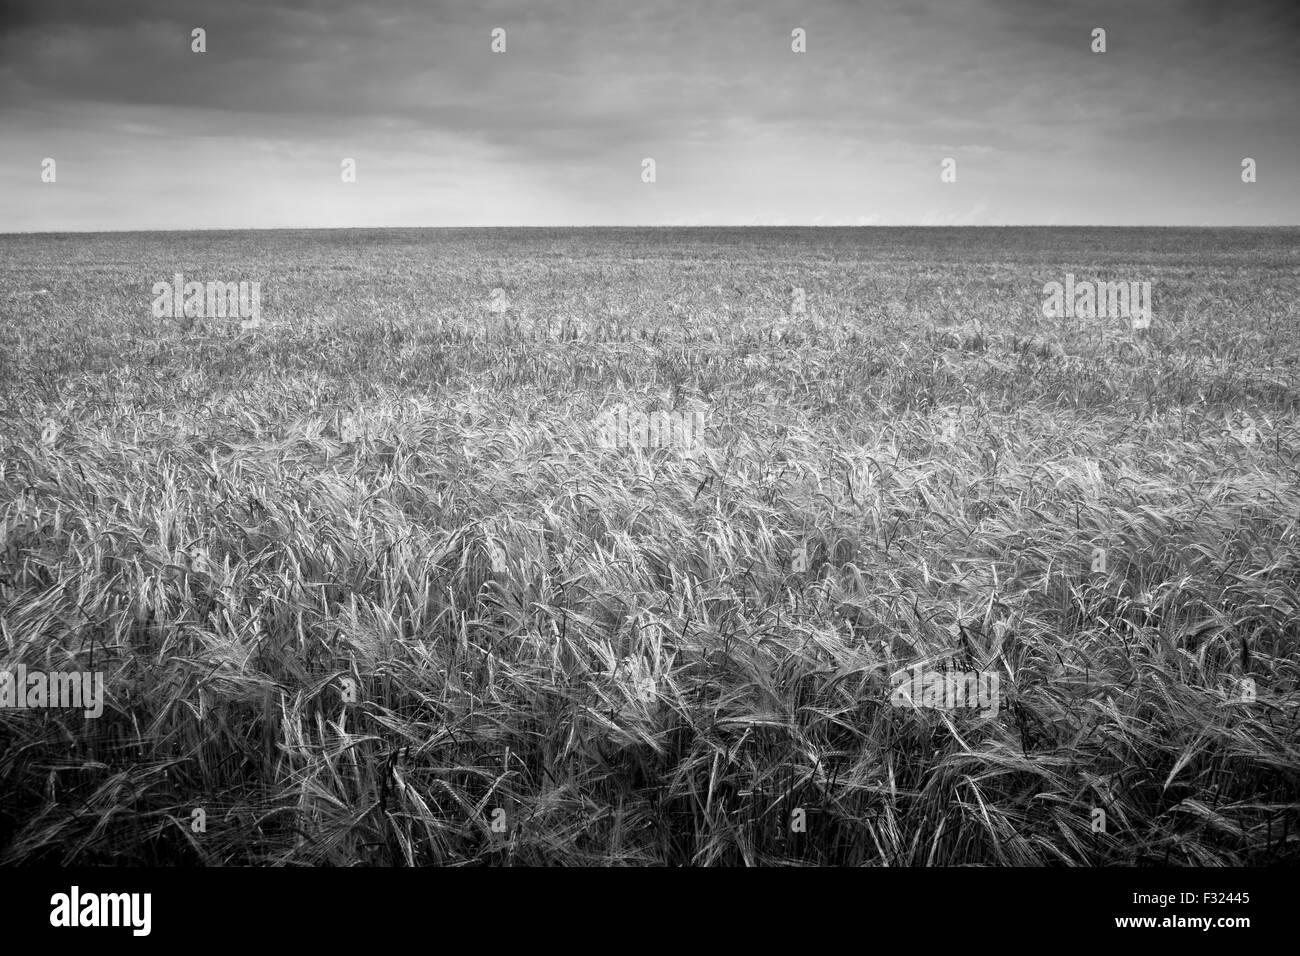 Wheat field, black and white - Stock Image